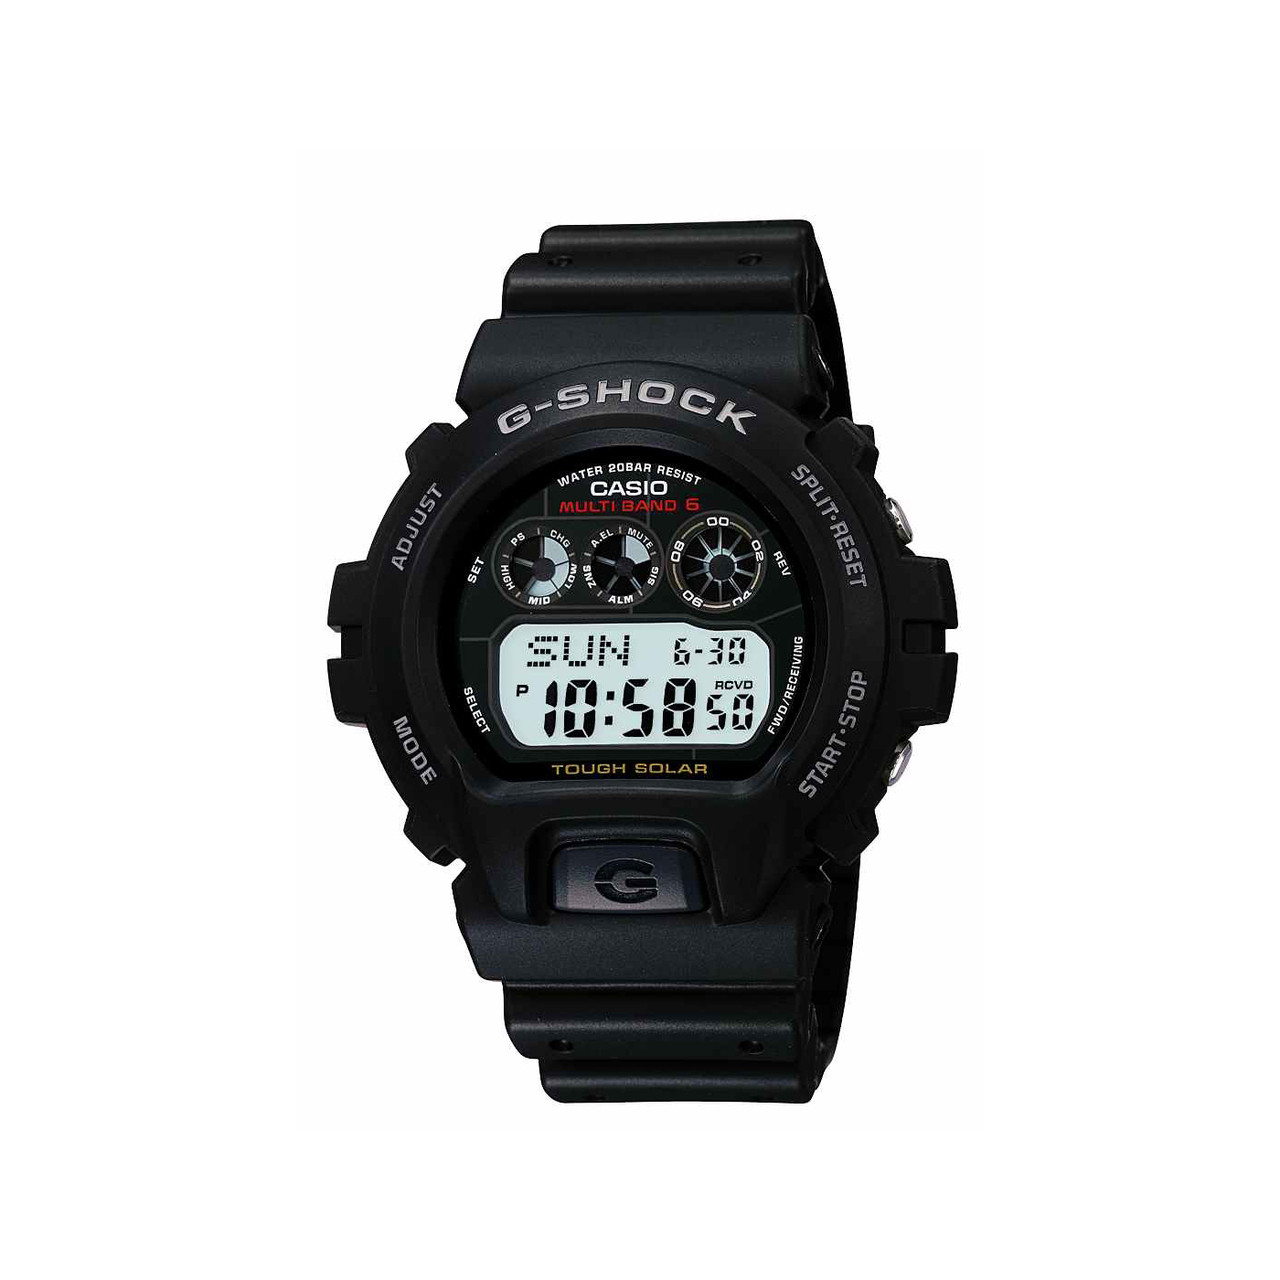 9aa6af832d4a Casio Men s G-Shock Tough Solar Digital Sport Watch GW6900-1 Black. Your  Price   110.03 (You save  4.07). Image 1